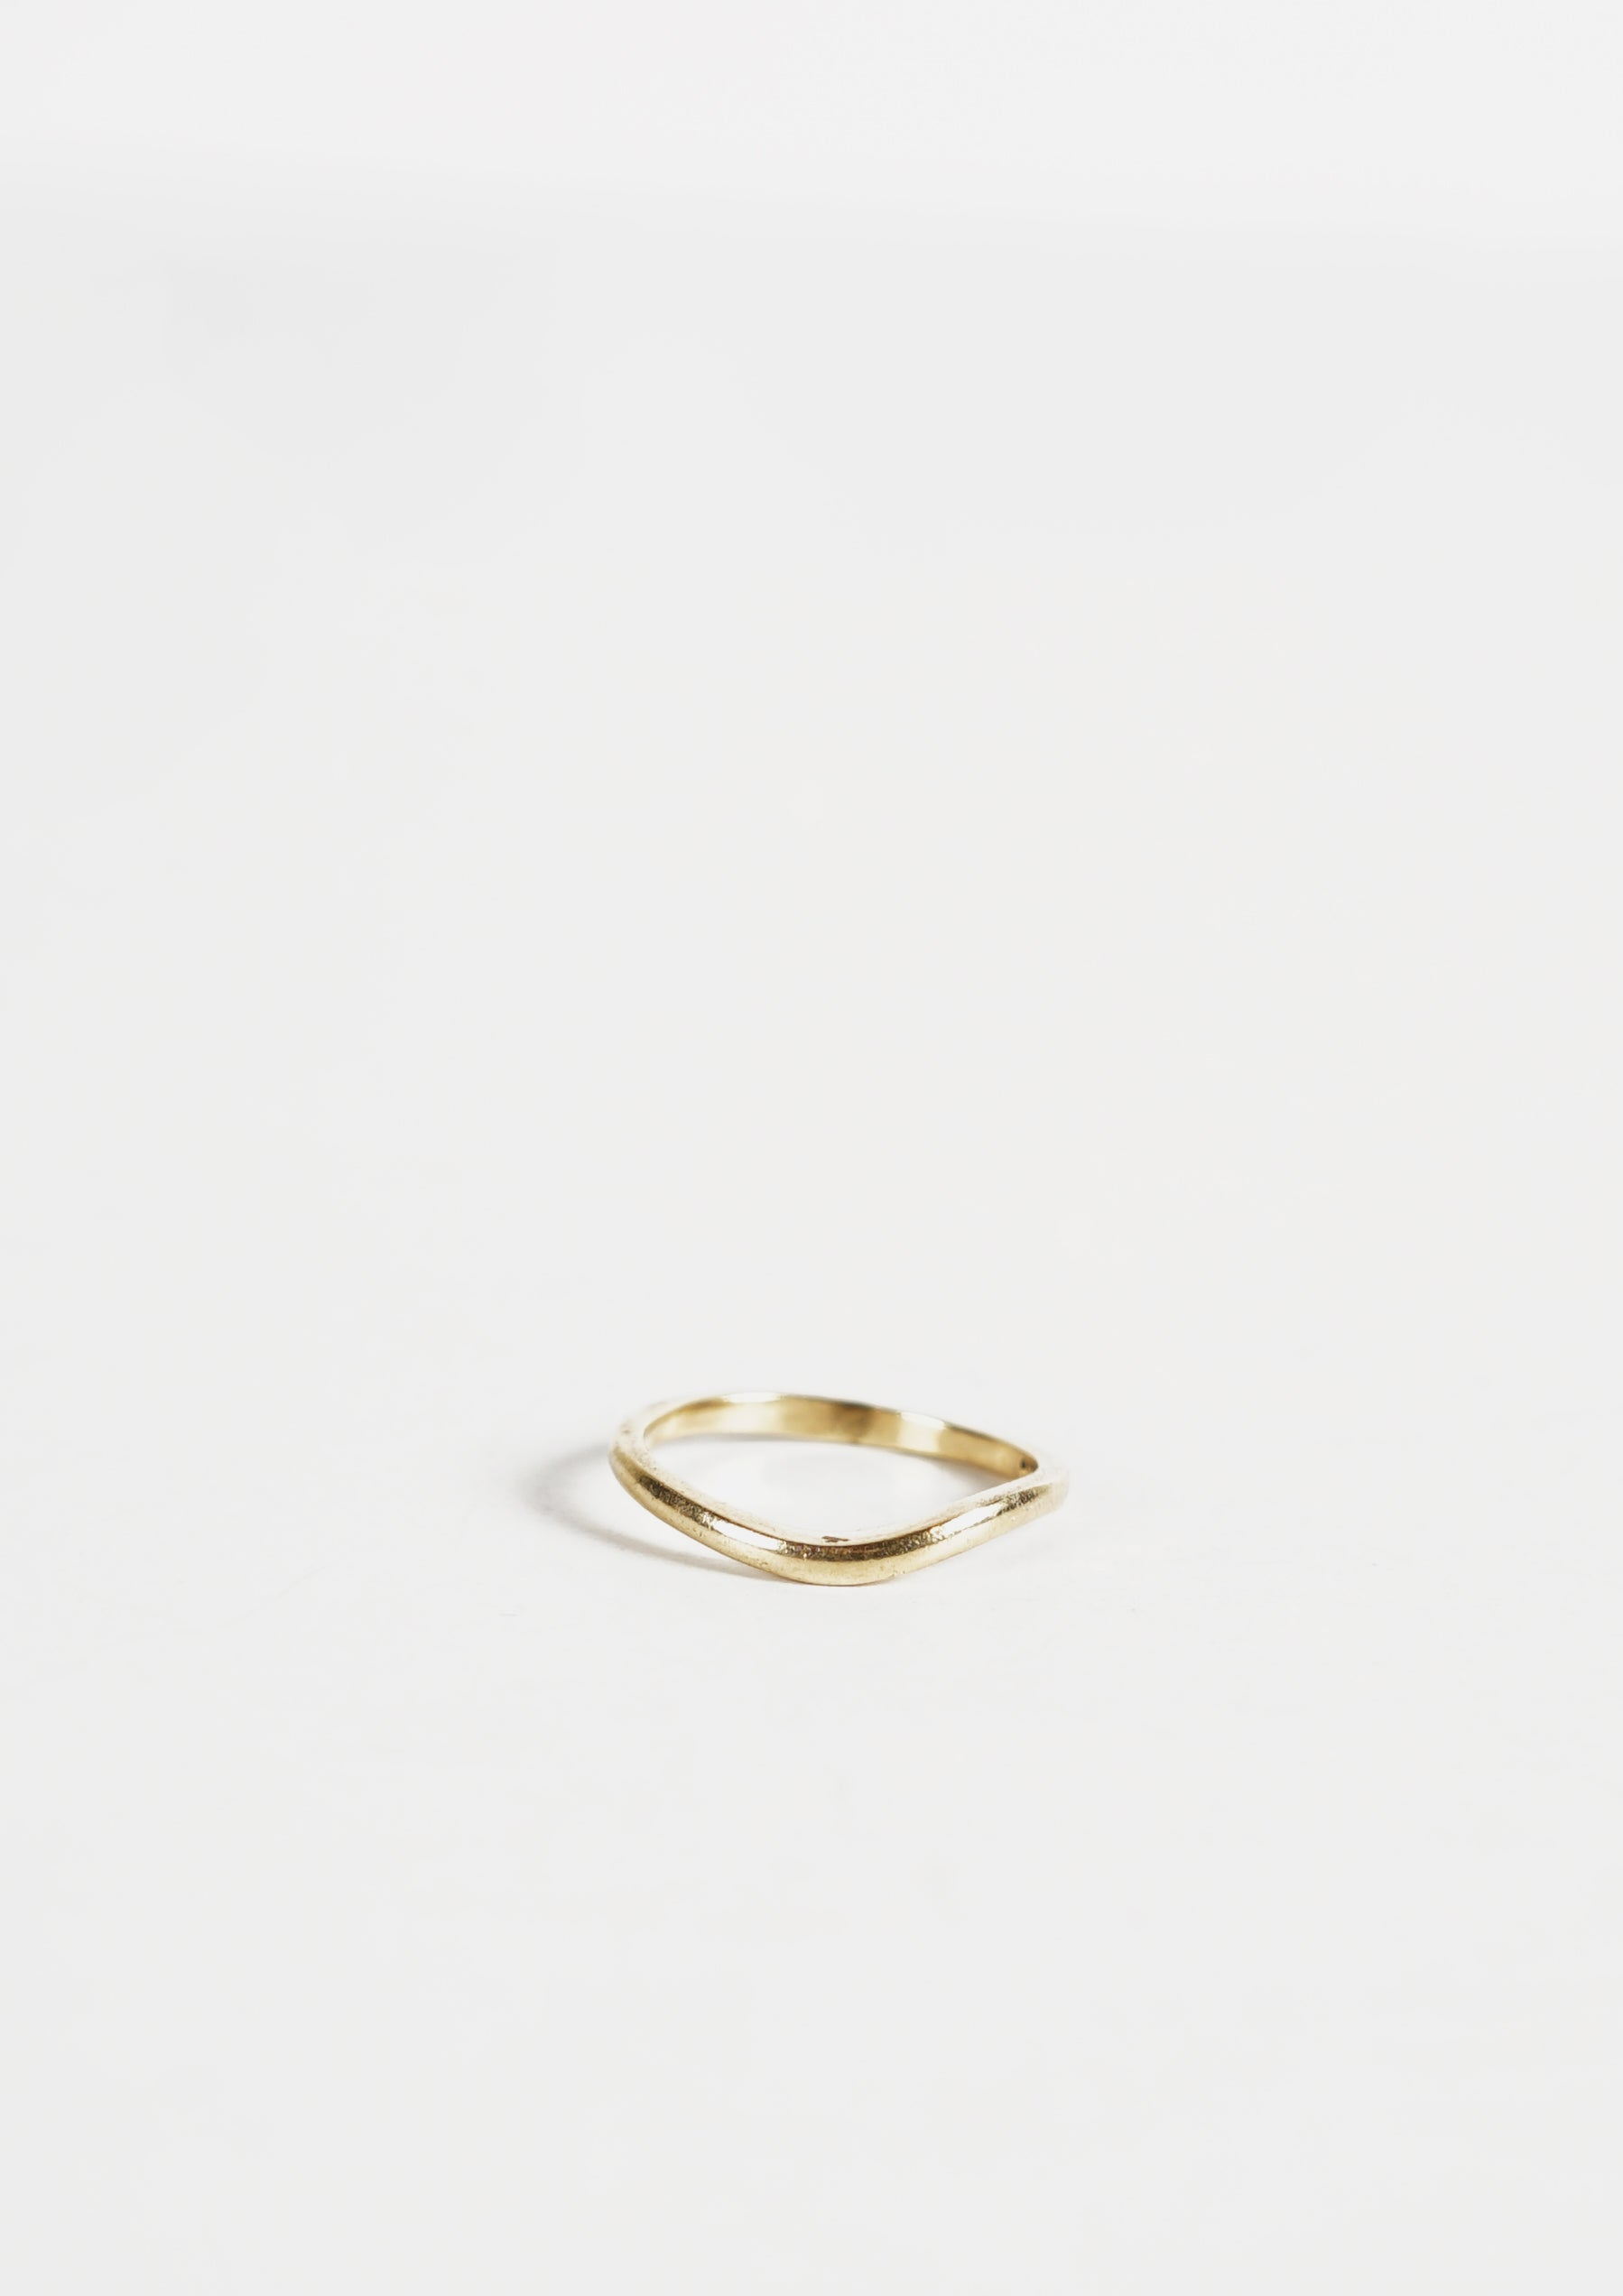 14k Gold Wavy Ring / 2mm